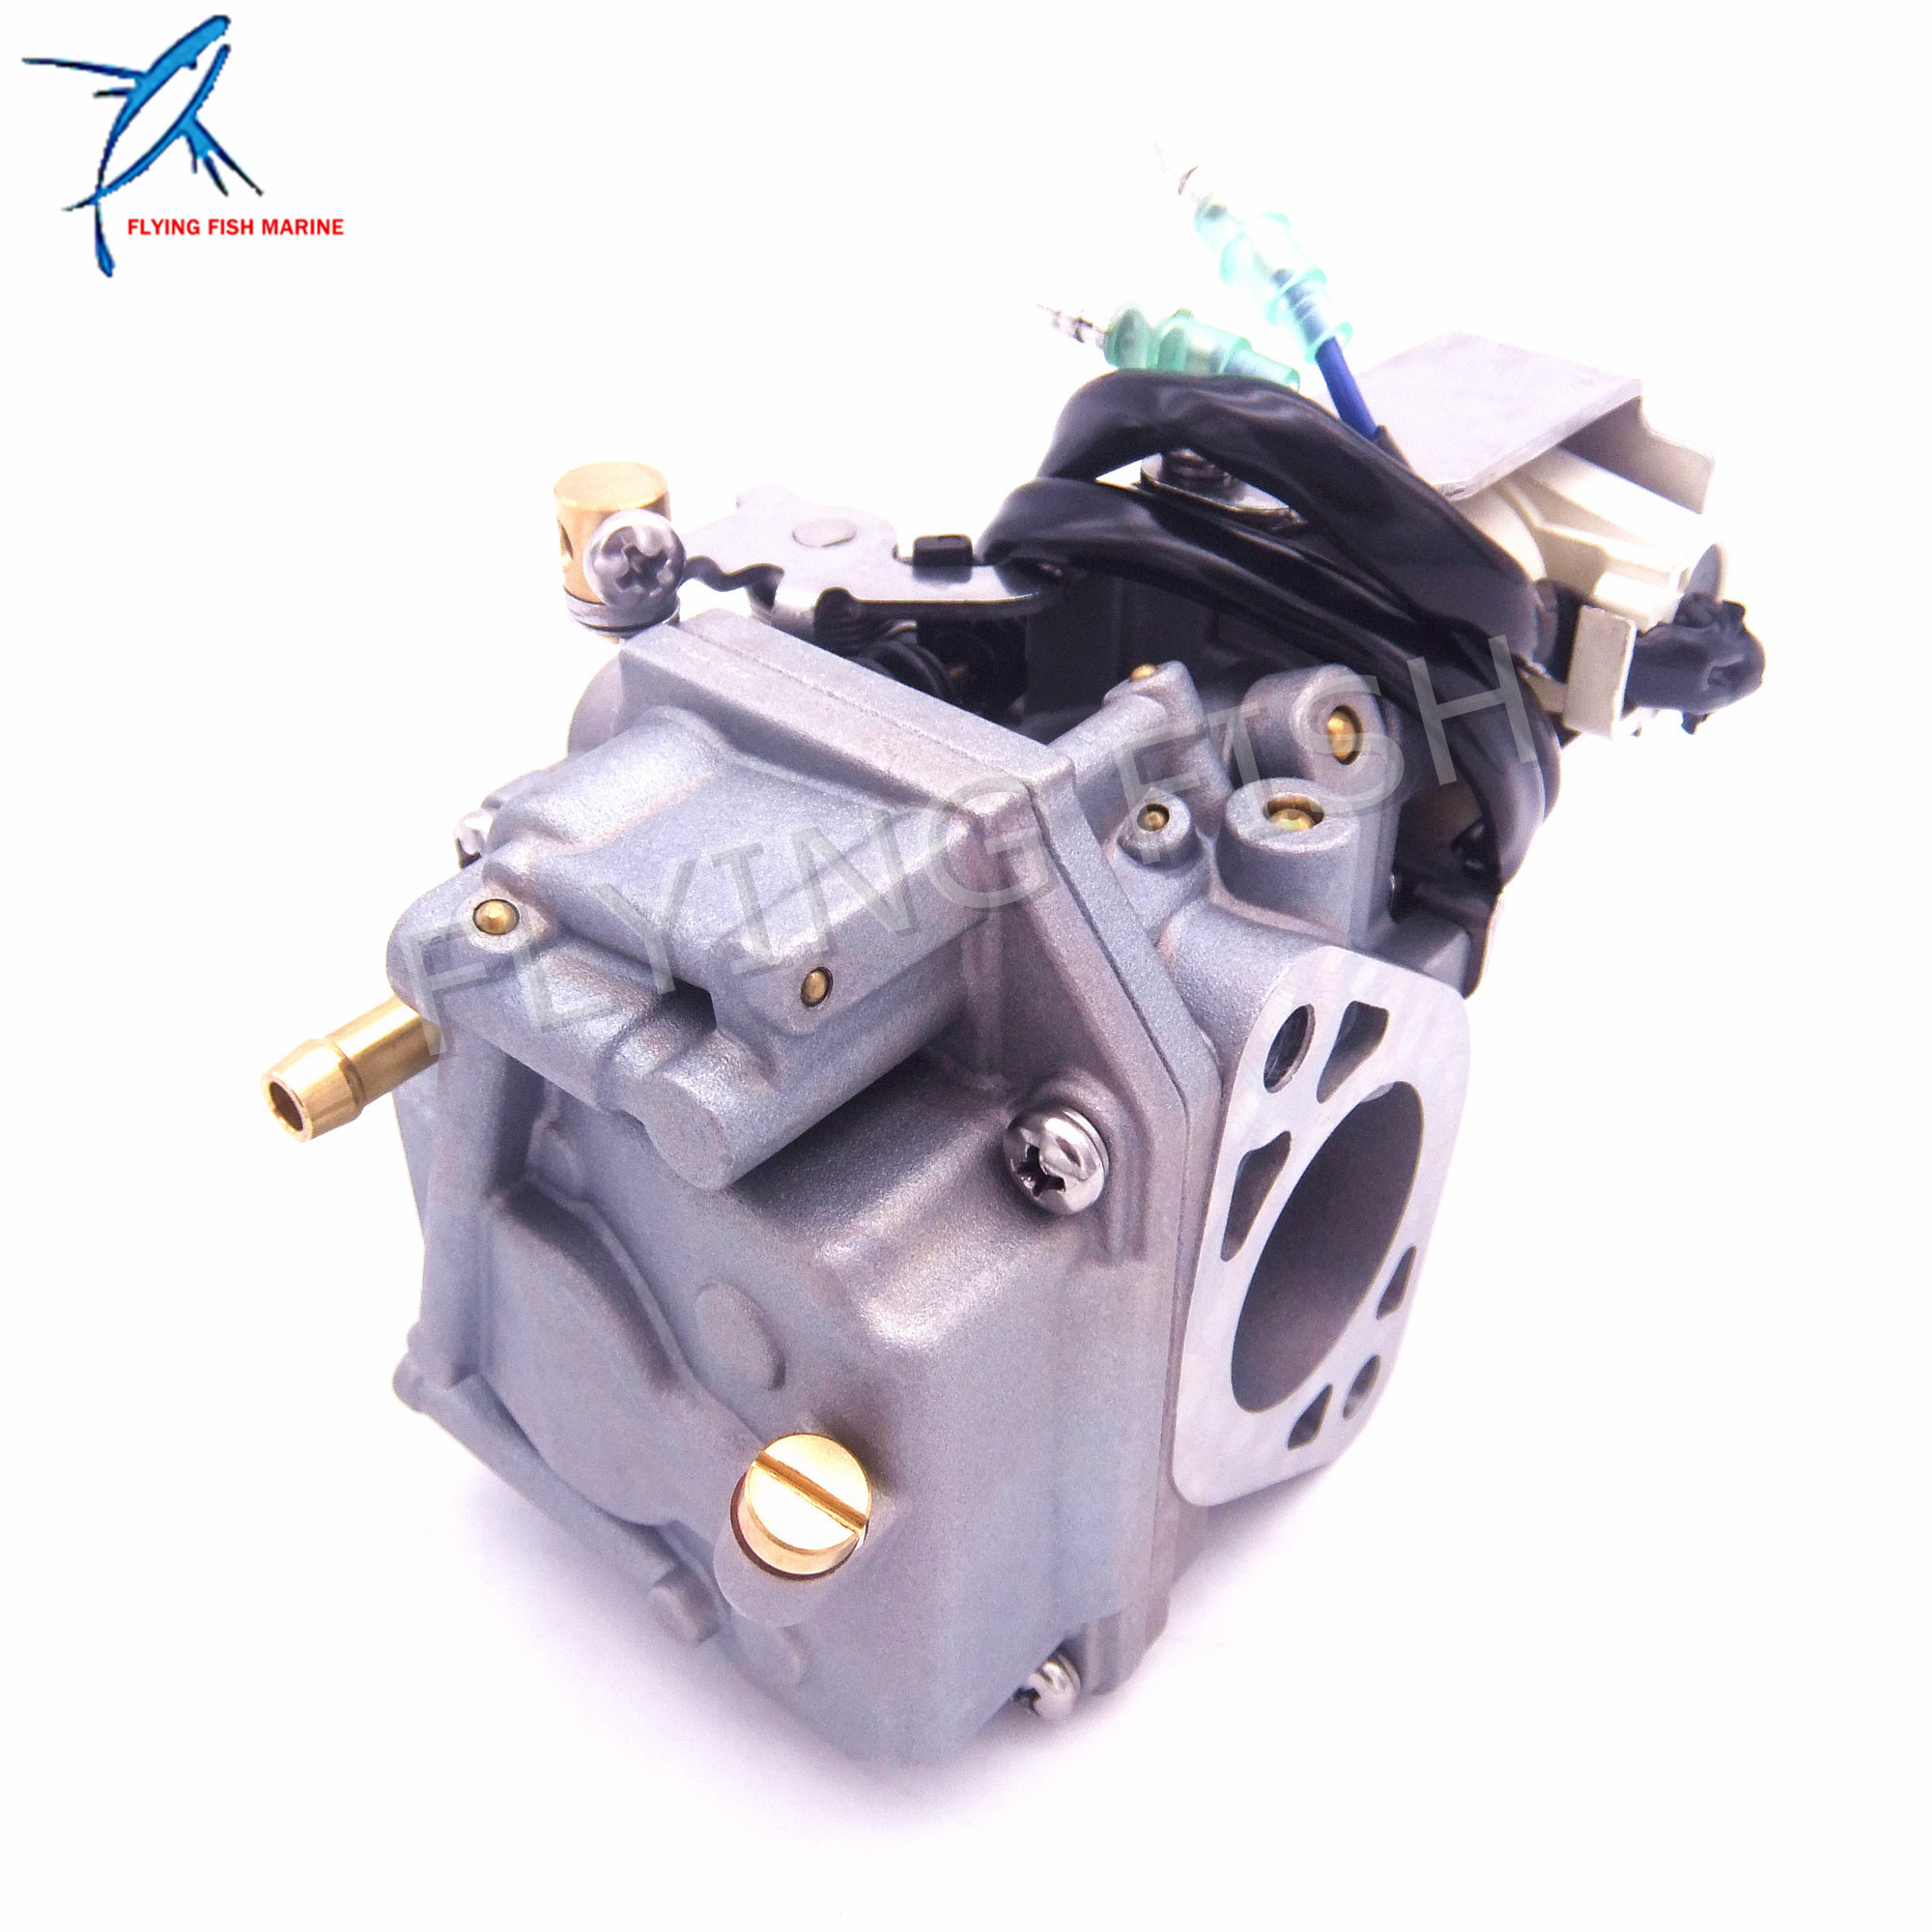 Outboard Engine Carburetor Assy 6AH-14301-00 6AH-14301-01 for Yamaha 4-stroke F20 Boat Motor Free Shipping 63v 14301 10 outboard carburetor assy for yamaha 9 9hp 15hp 2 stroke outboard engine boat motor aftermarket parts 63v 14301 00